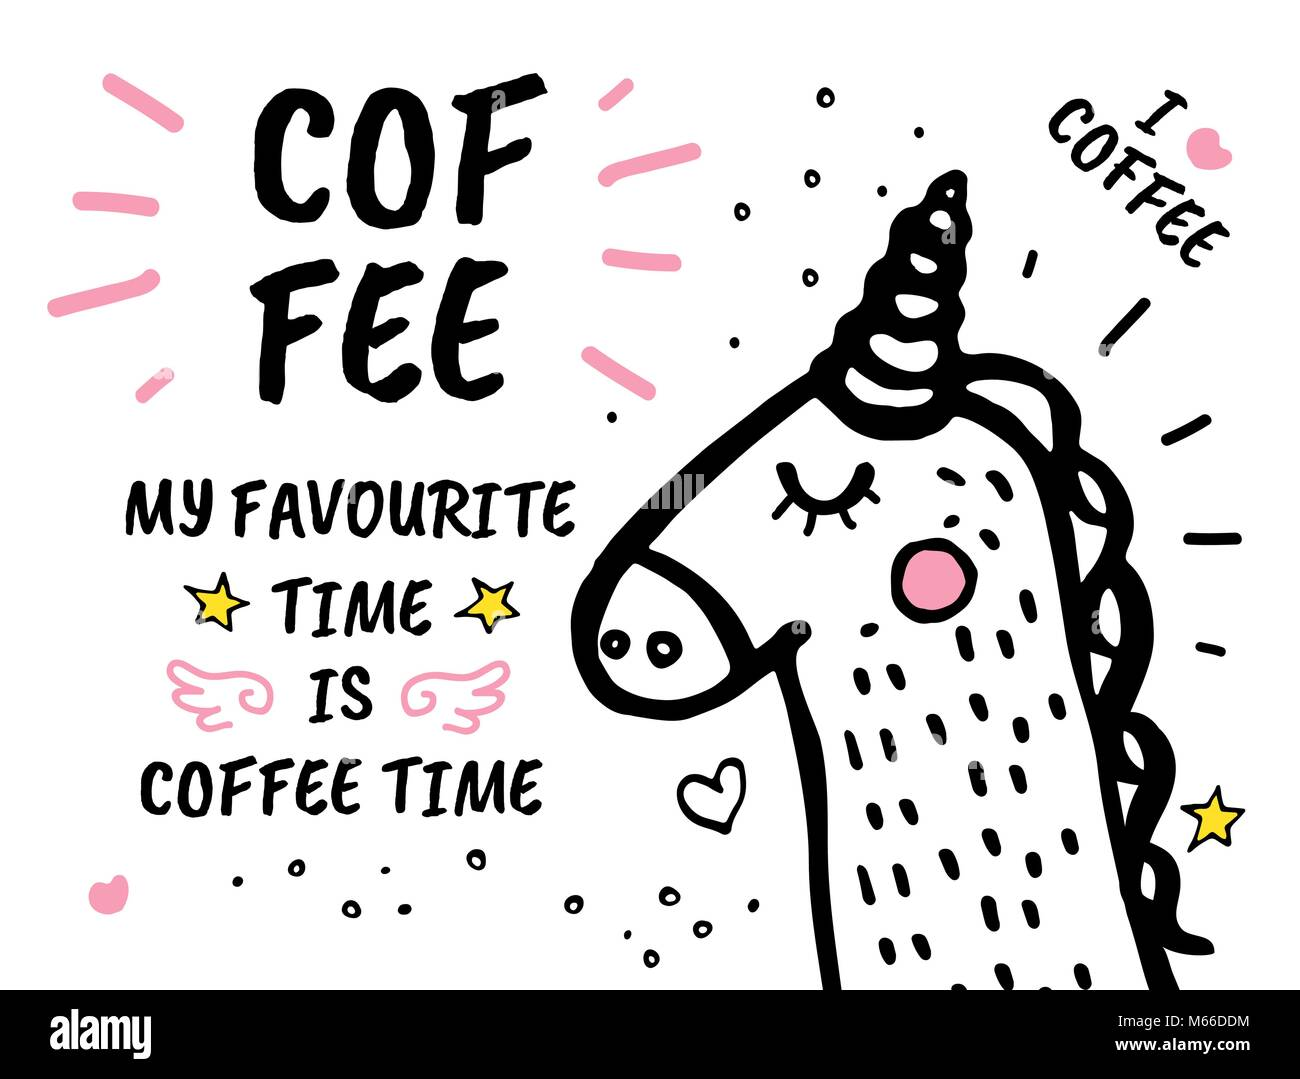 Coffee Time Is My Favourite hand drawn doodles Stock Vector